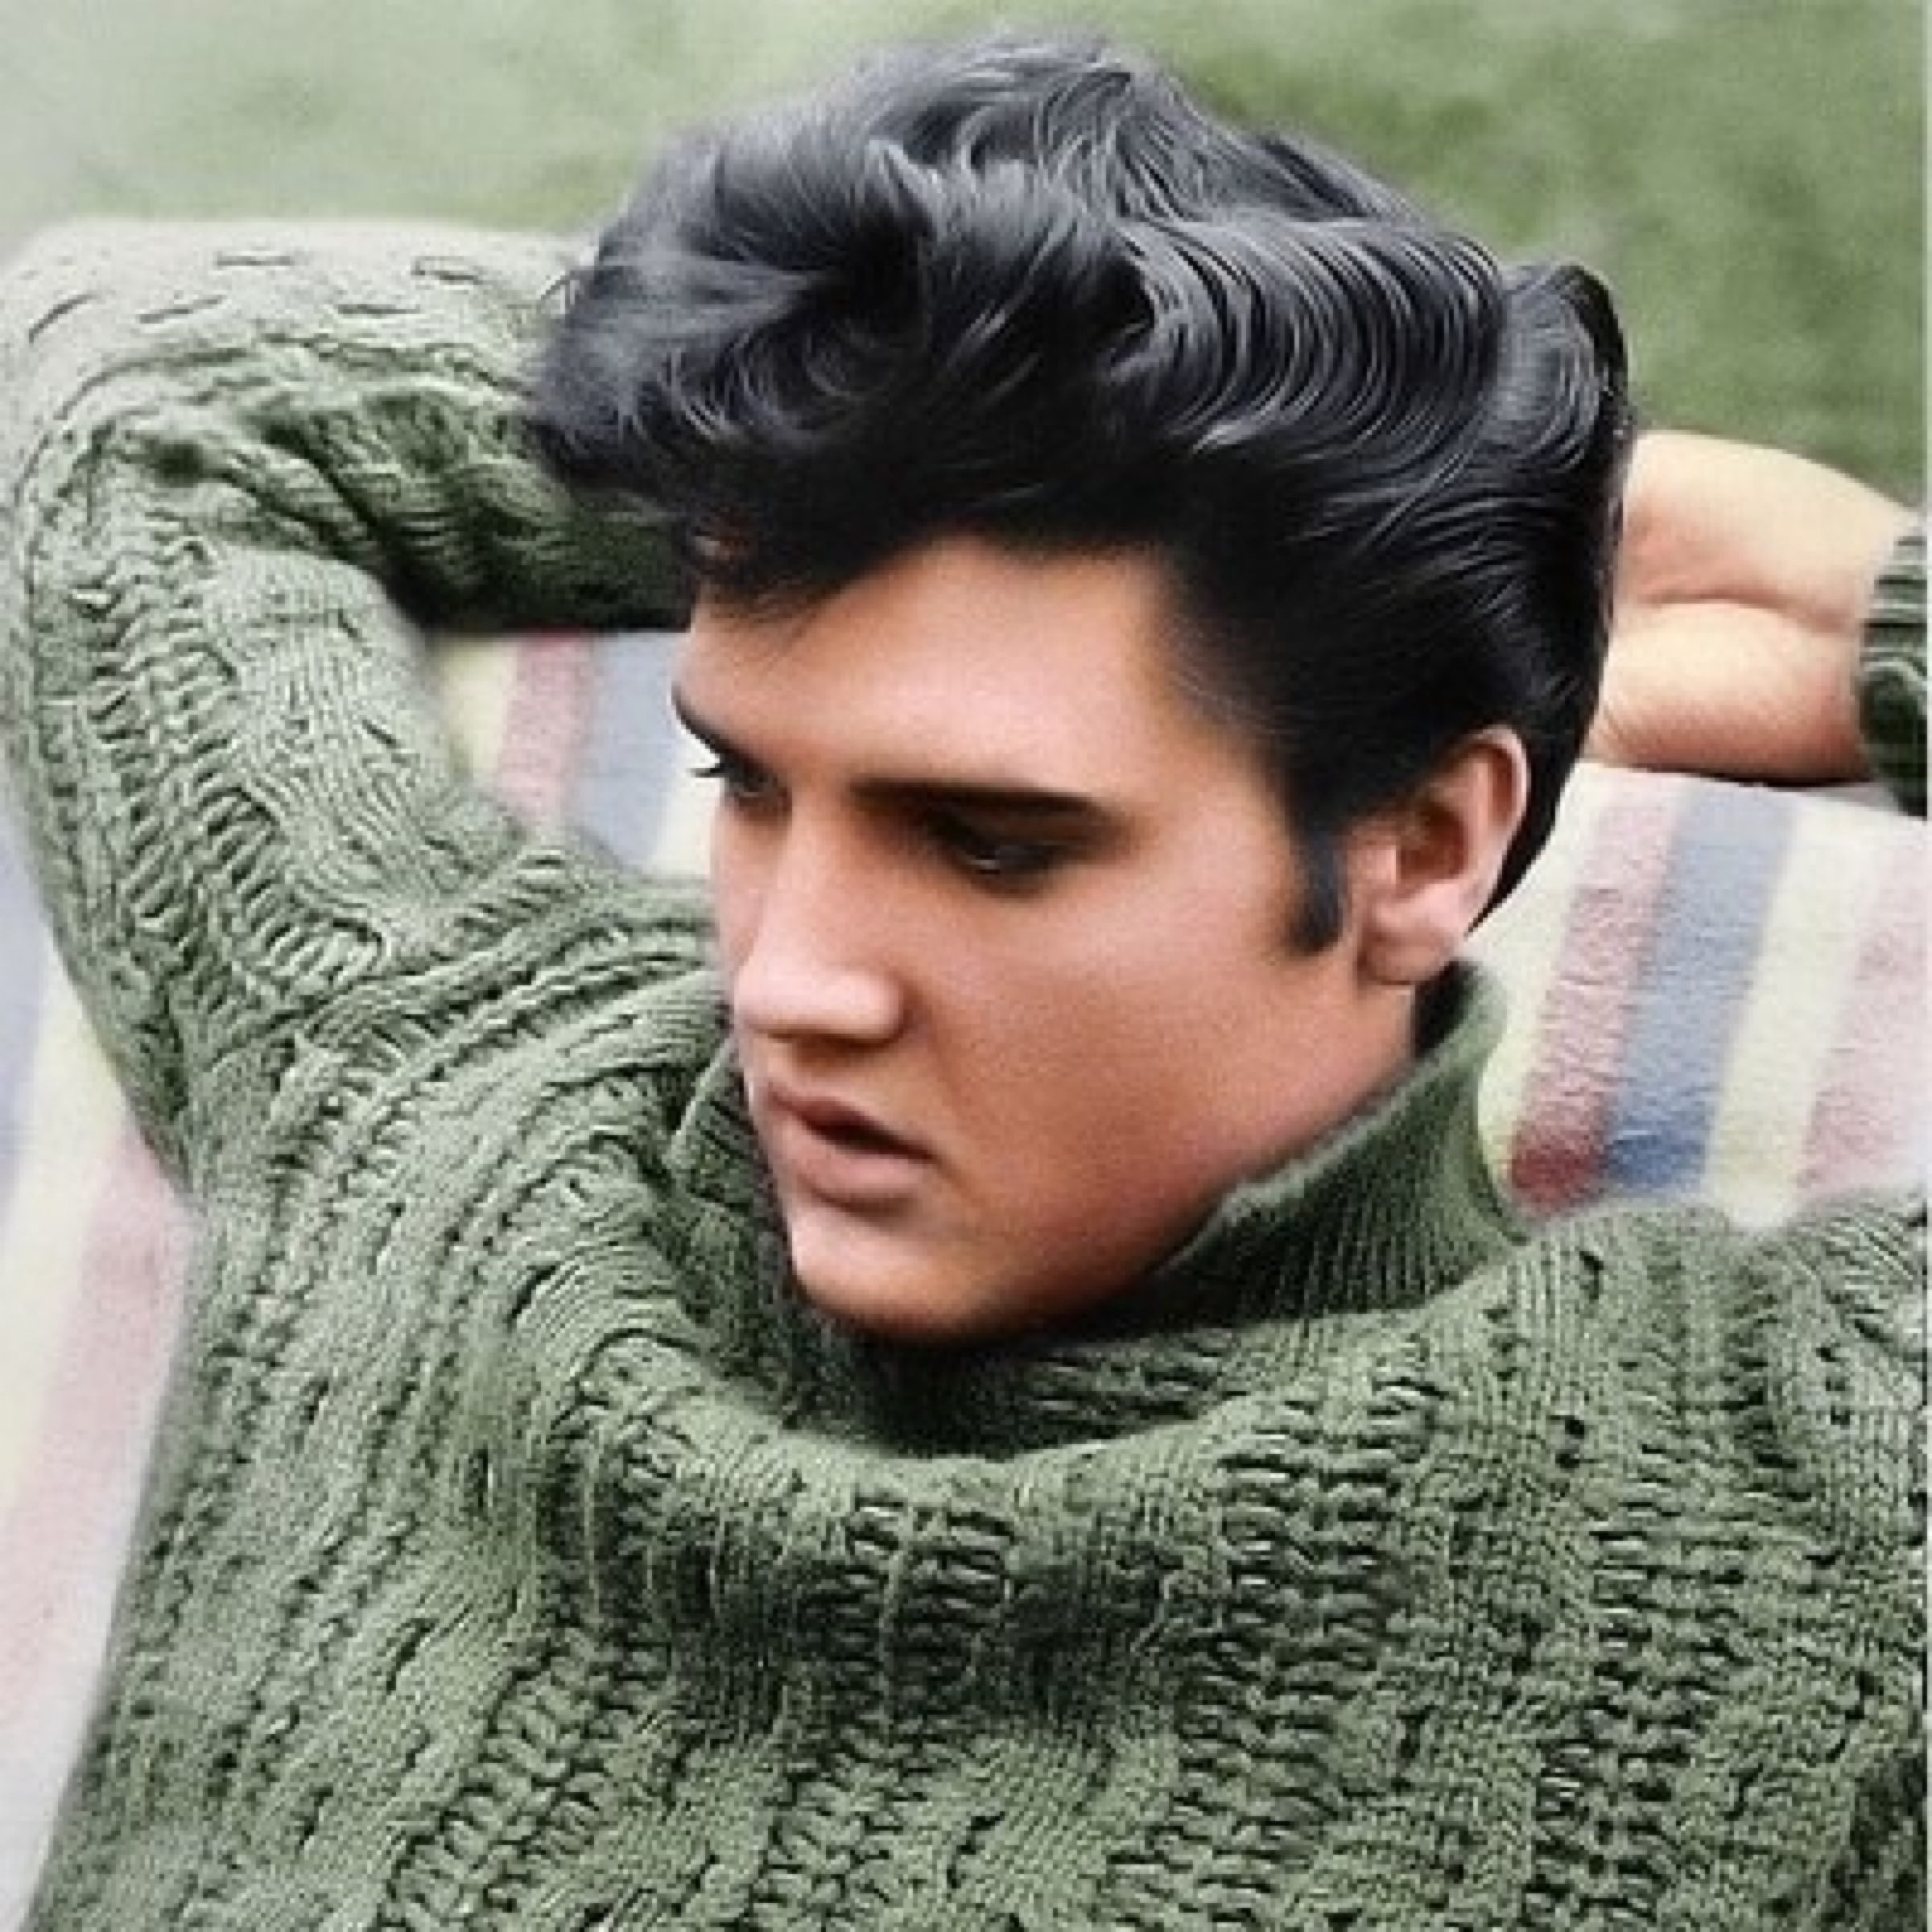 Amazing Elvis Combing Hair Images Free Download Short Hairstyles For Black Women Fulllsitofus